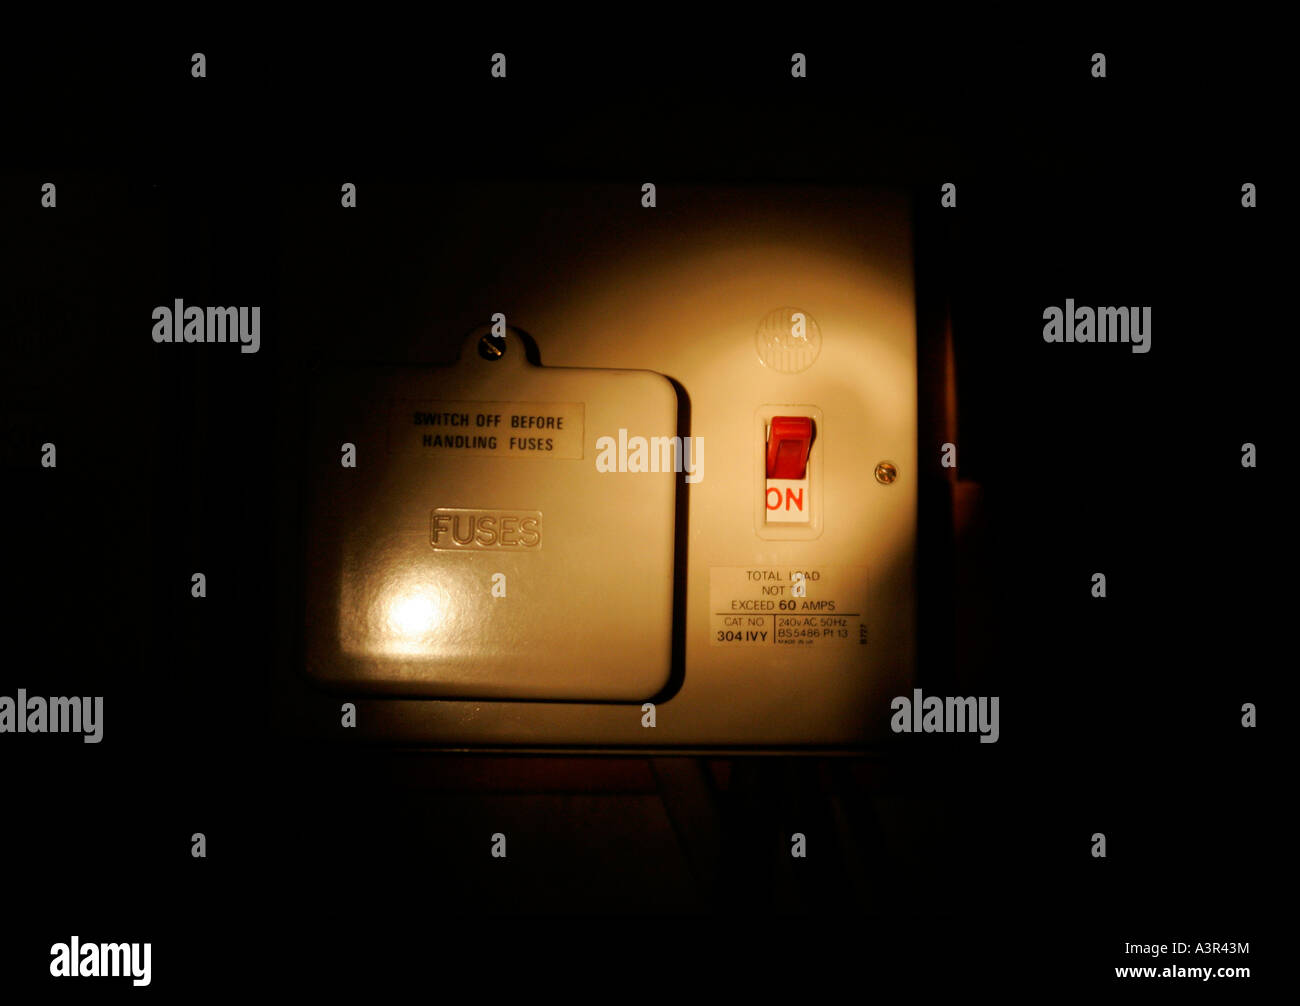 Domestic Fuse Box Stock Photos Images Alamy Old 60 Amp Electricity Fusebox In Torchlight Image